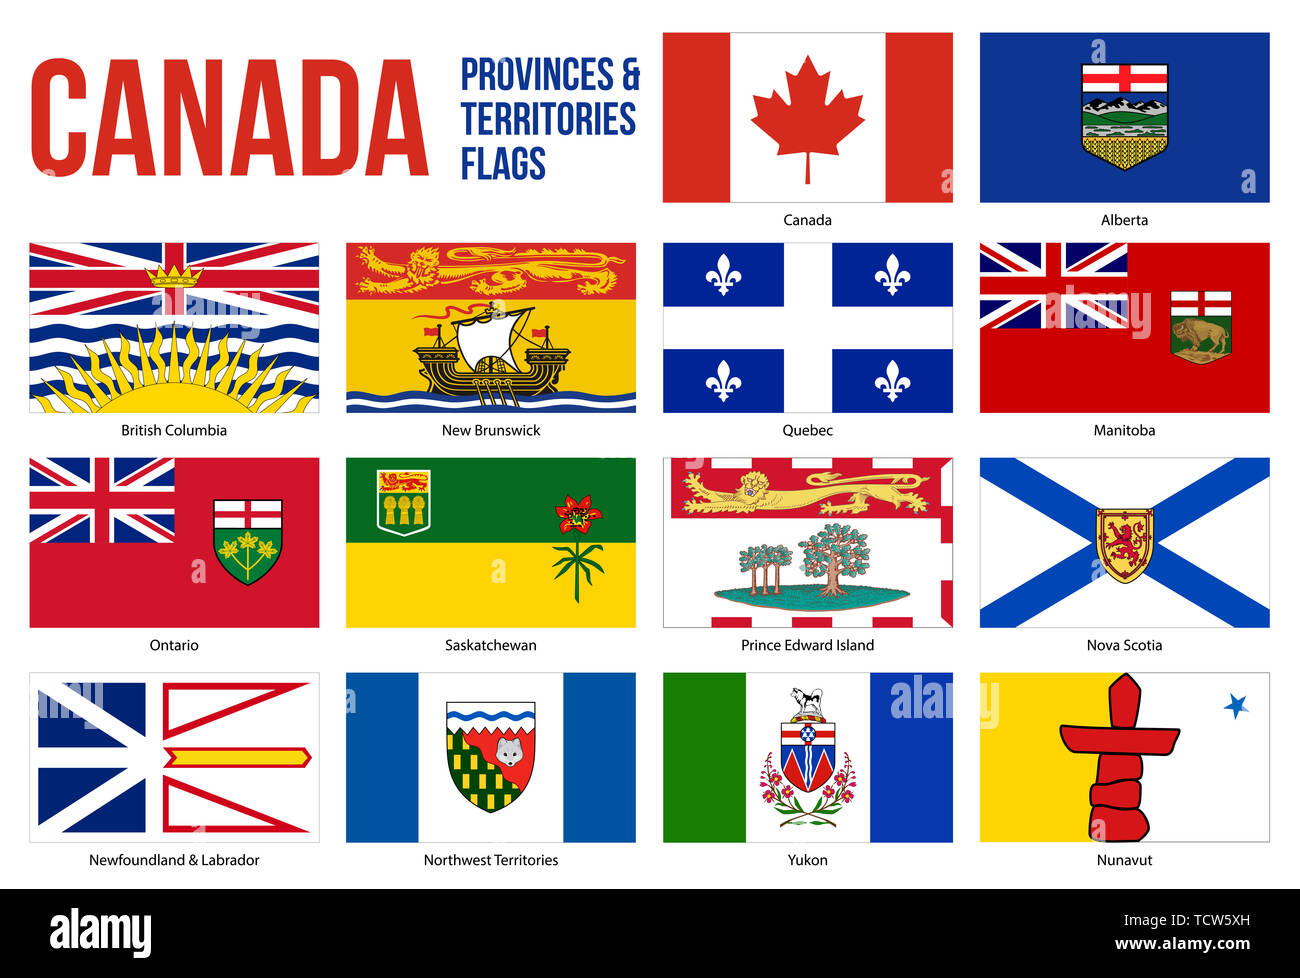 Canada All Provinces & Territories Flag Vector Illustration on White Background. Flags of Canada. Correct Size, Proportion and Colors. - Stock Image